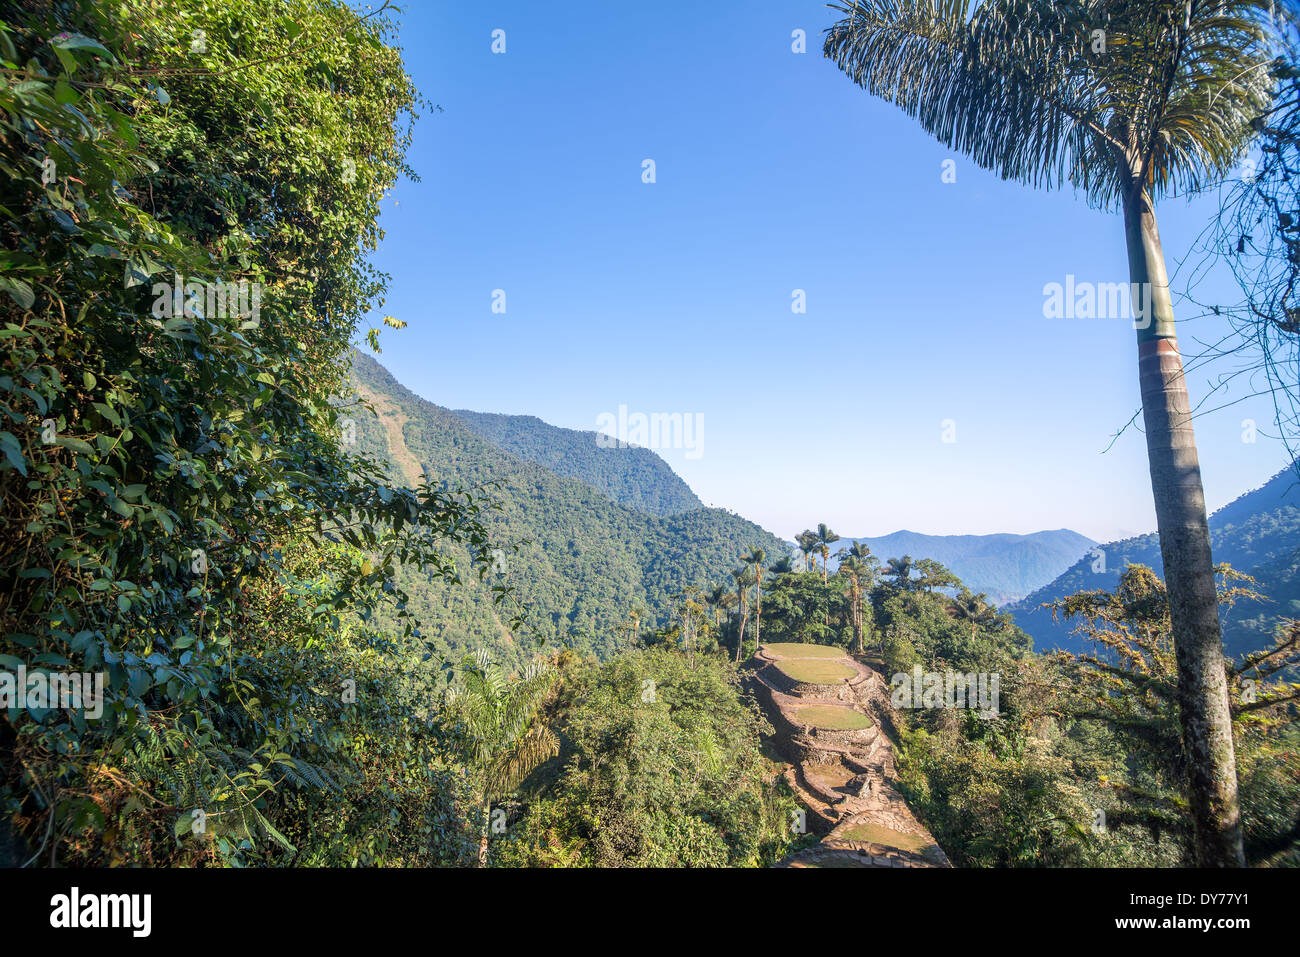 The Lost City, or Ciudad Perdida in the Sierra Nevada de Santa Marta mountain range in Colombia - Stock Image